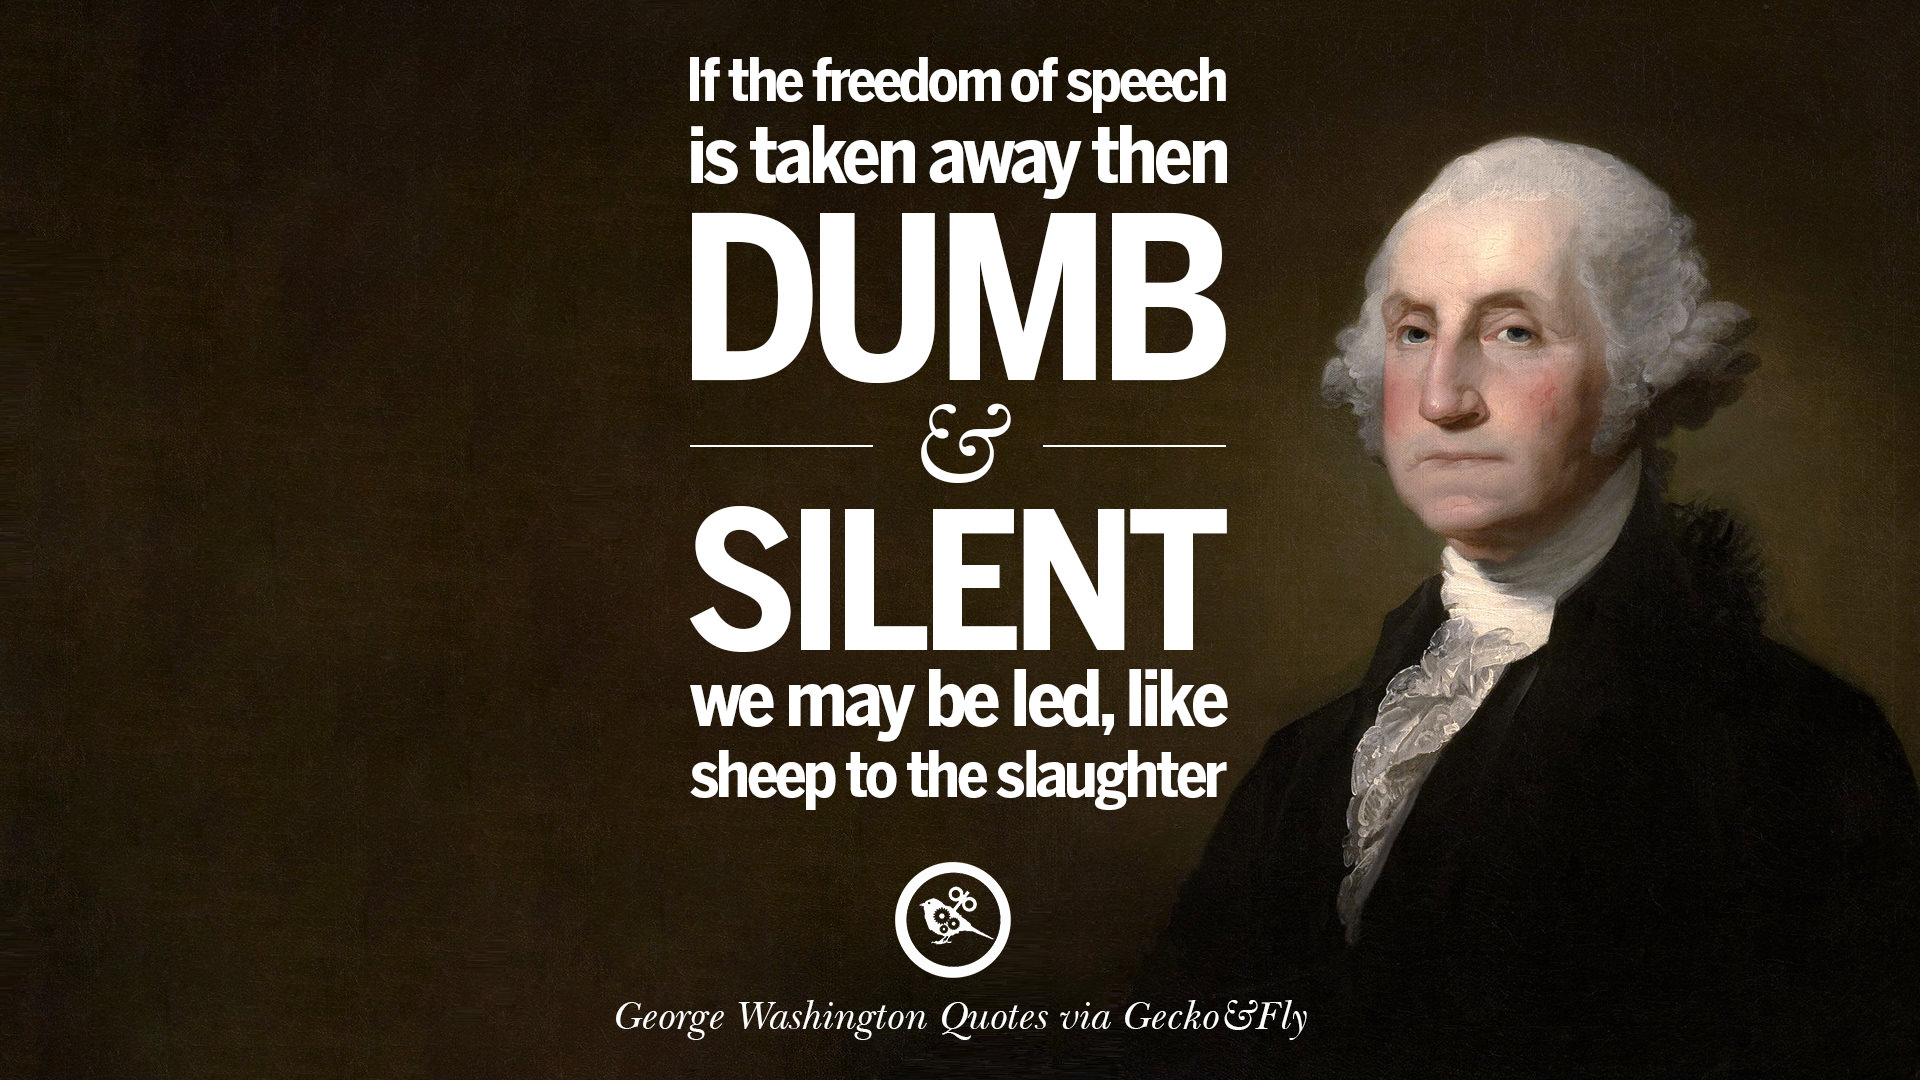 Revolutionary War Quotes 20 Famous George Washington Quotes On Freedom Faith Religion